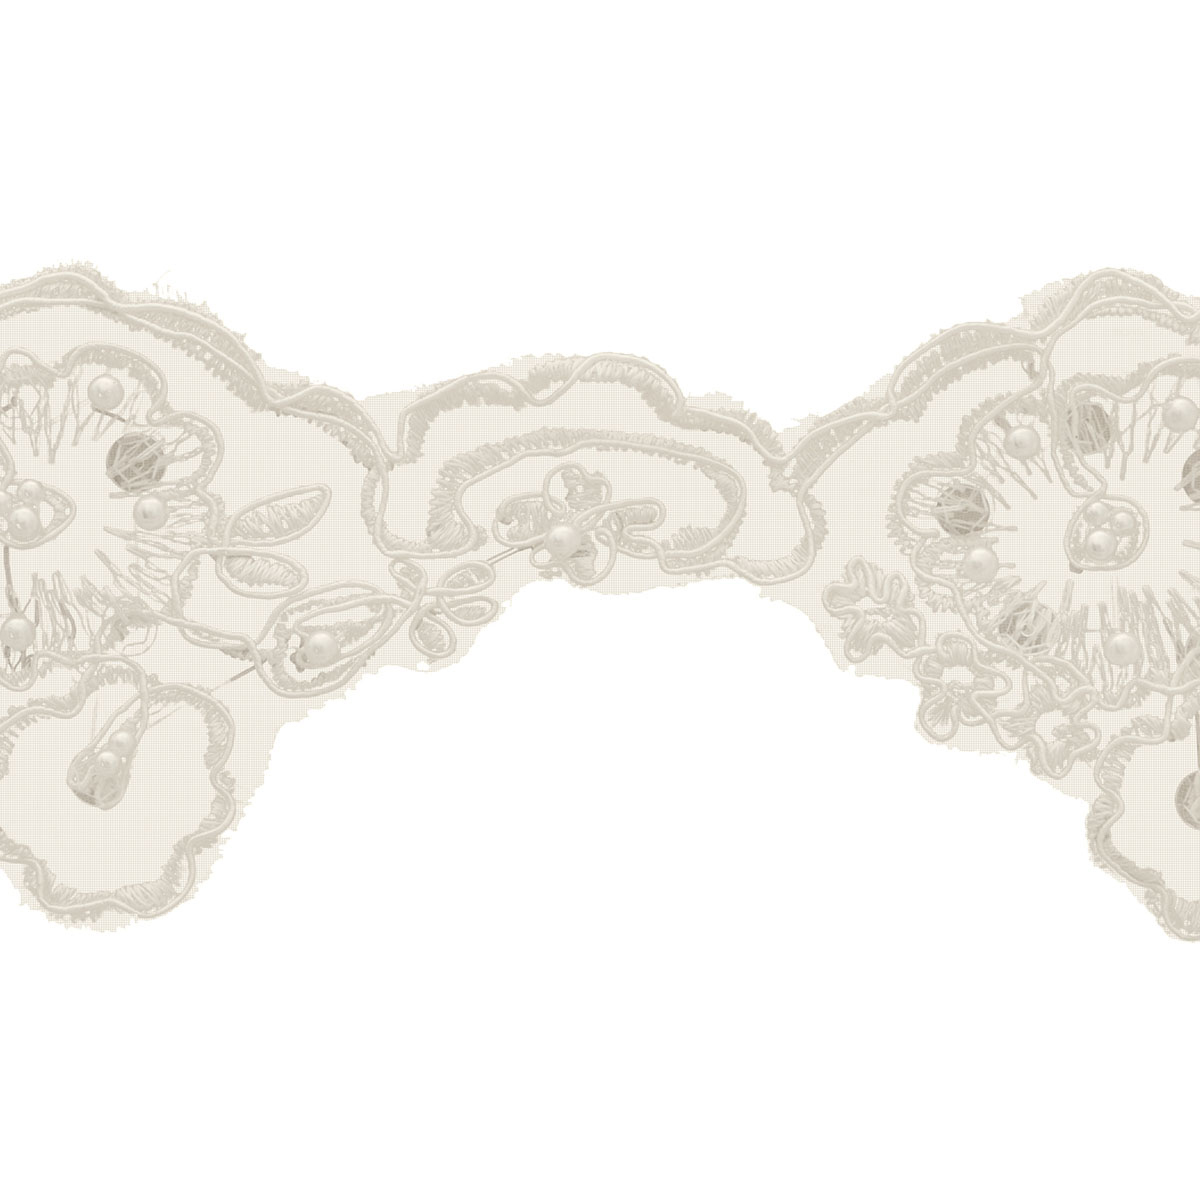 Wide Bridal Lace Beads 10Yd Ivory